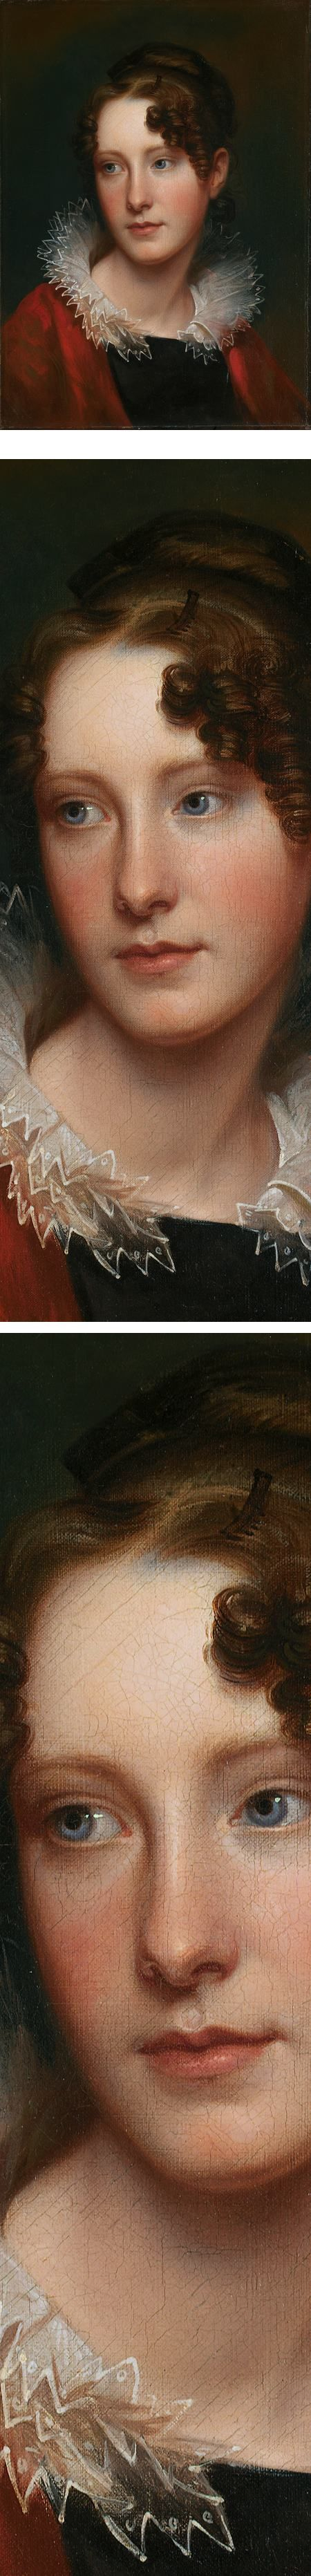 Eye Candy for today: Rembrandt Peale's portrait of his daughter, Rosalba